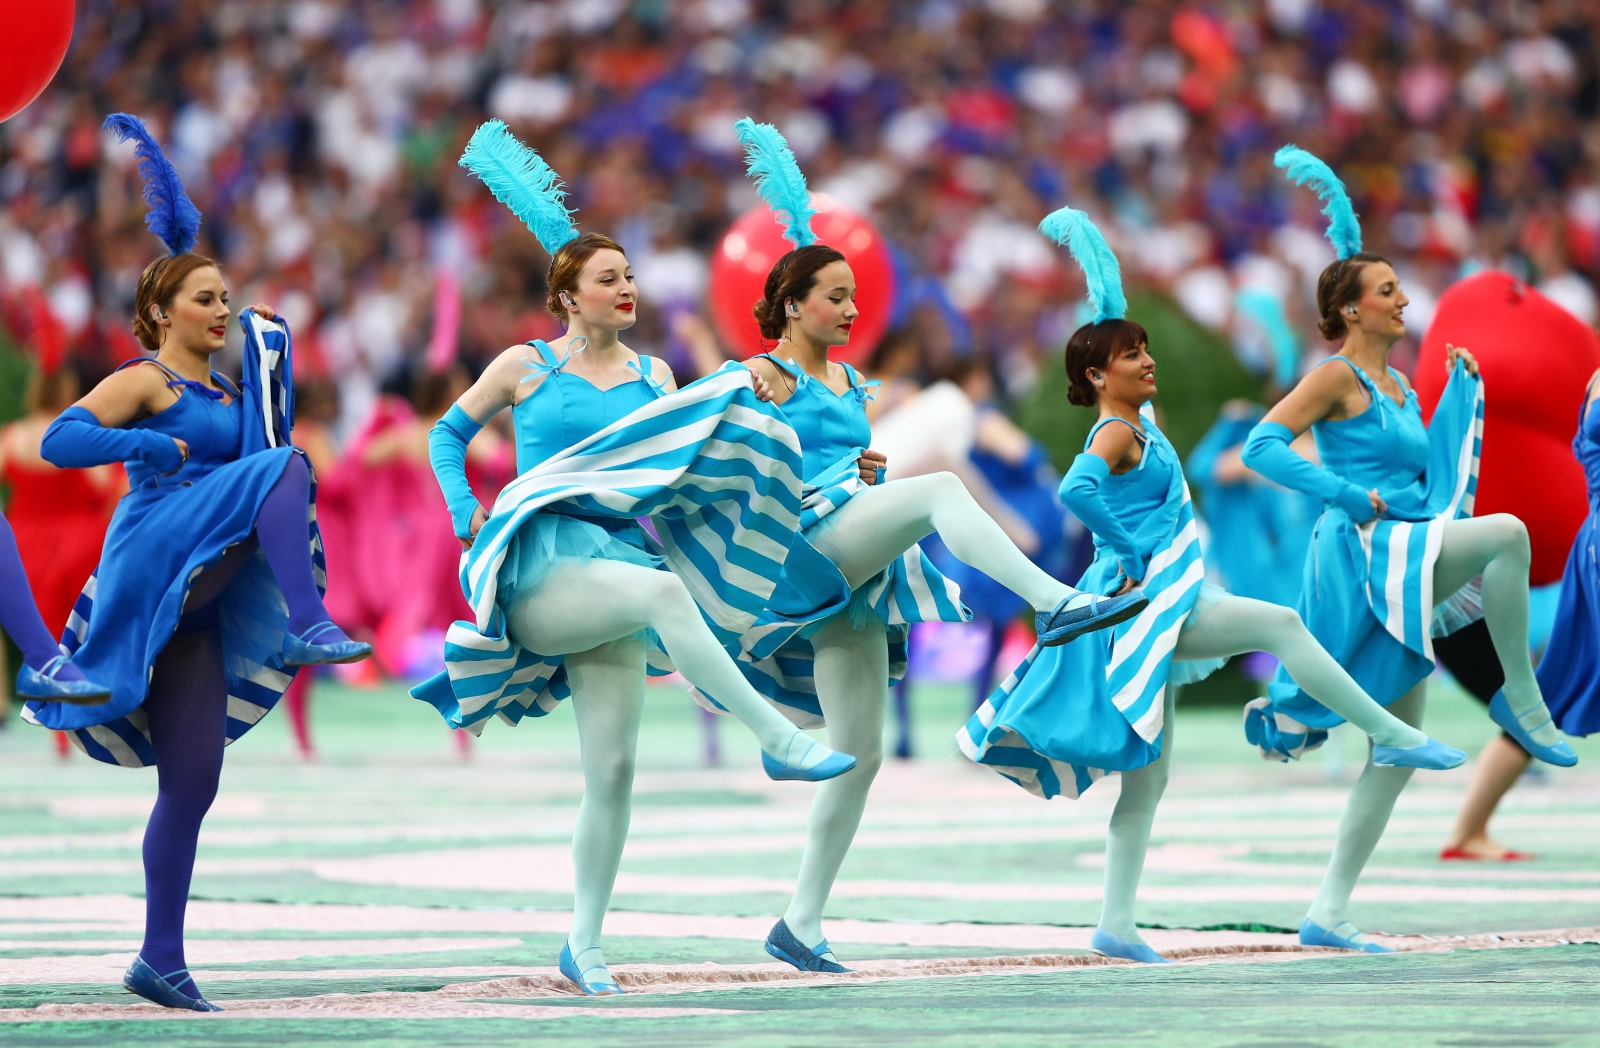 Dancers on the pitch